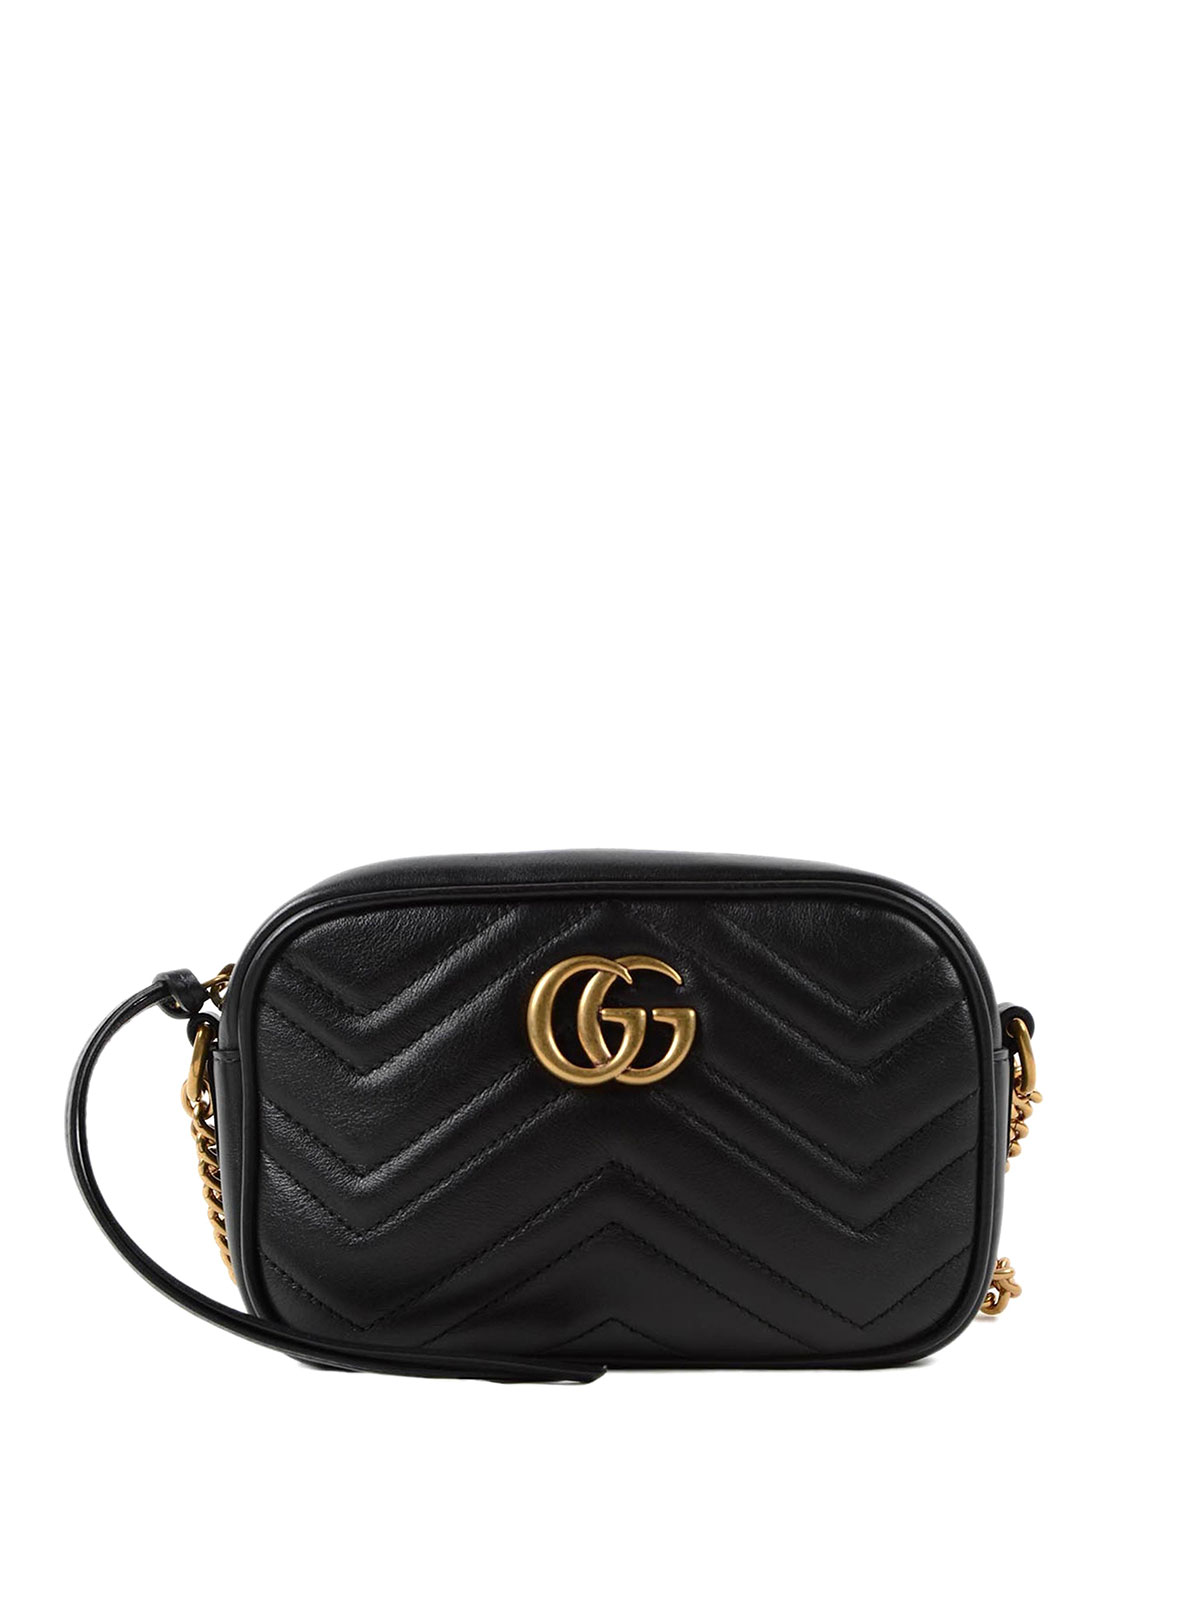 7cdb363e8edc2c Gucci - GG Marmont matelassé chain mini bag - cross body bags ...